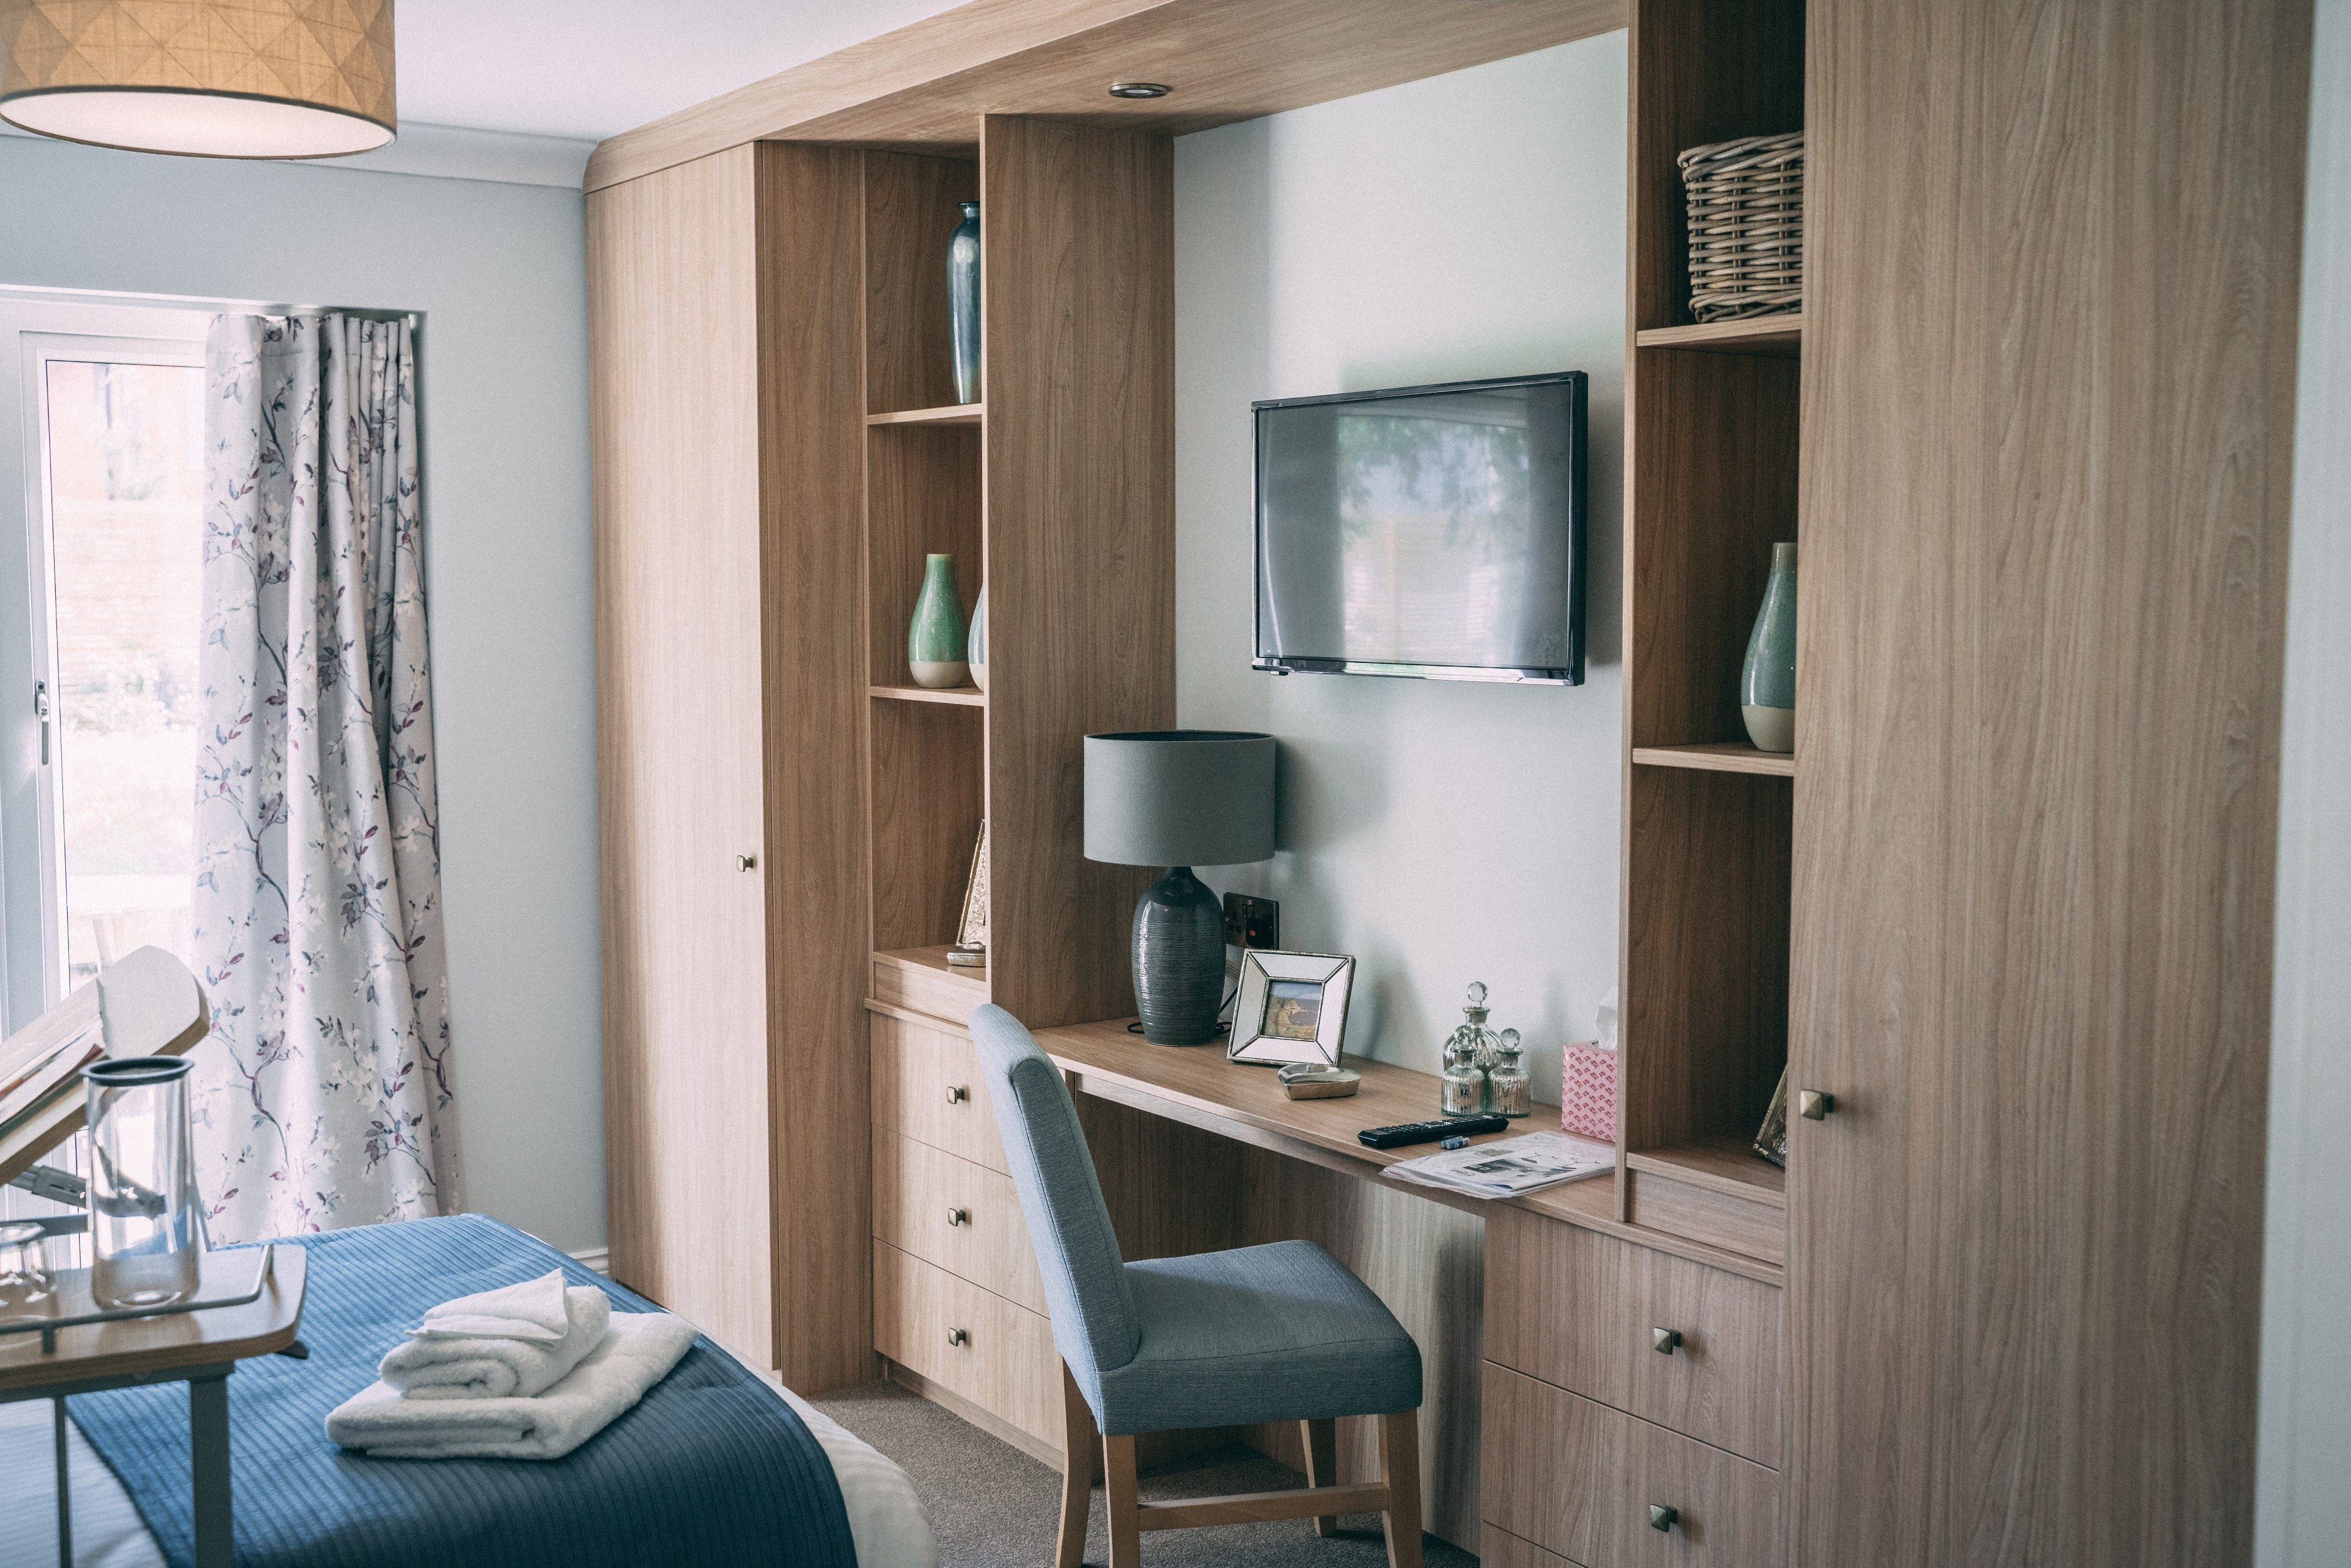 Bedroom Detail Built in Storage